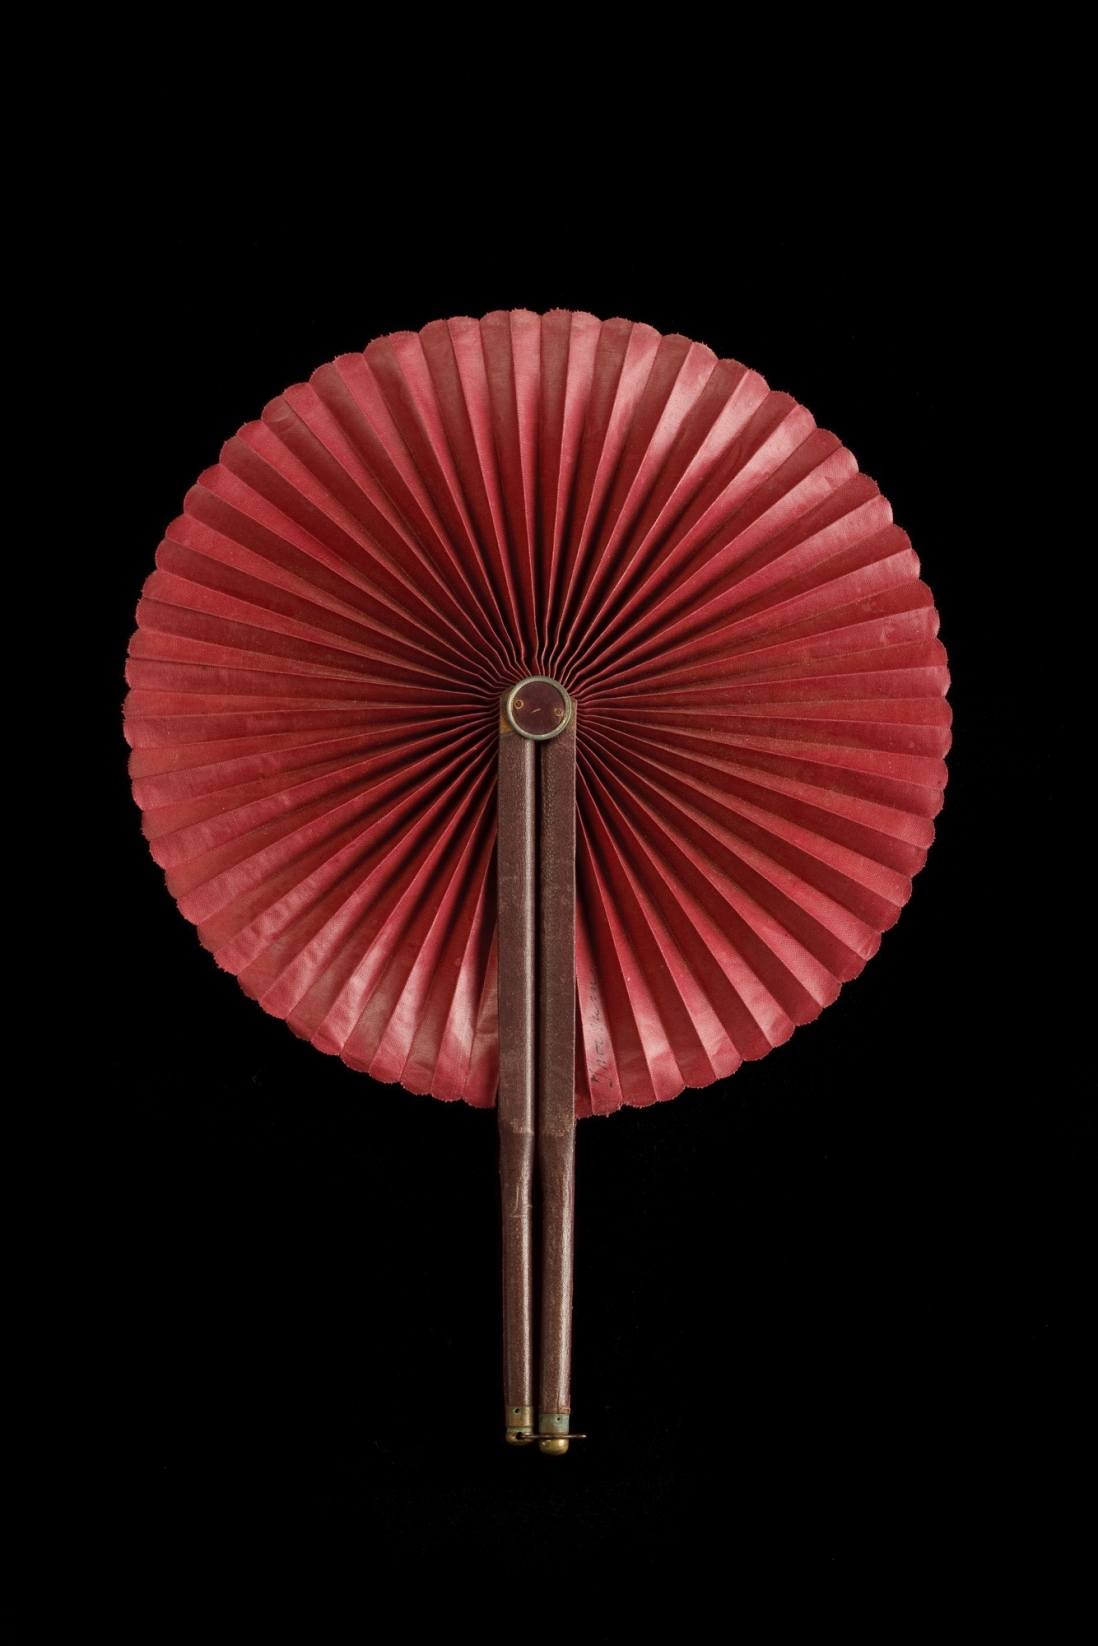 Cockade fan. Wood with leatherette and fabric. Likely Chinese, early 1900s.